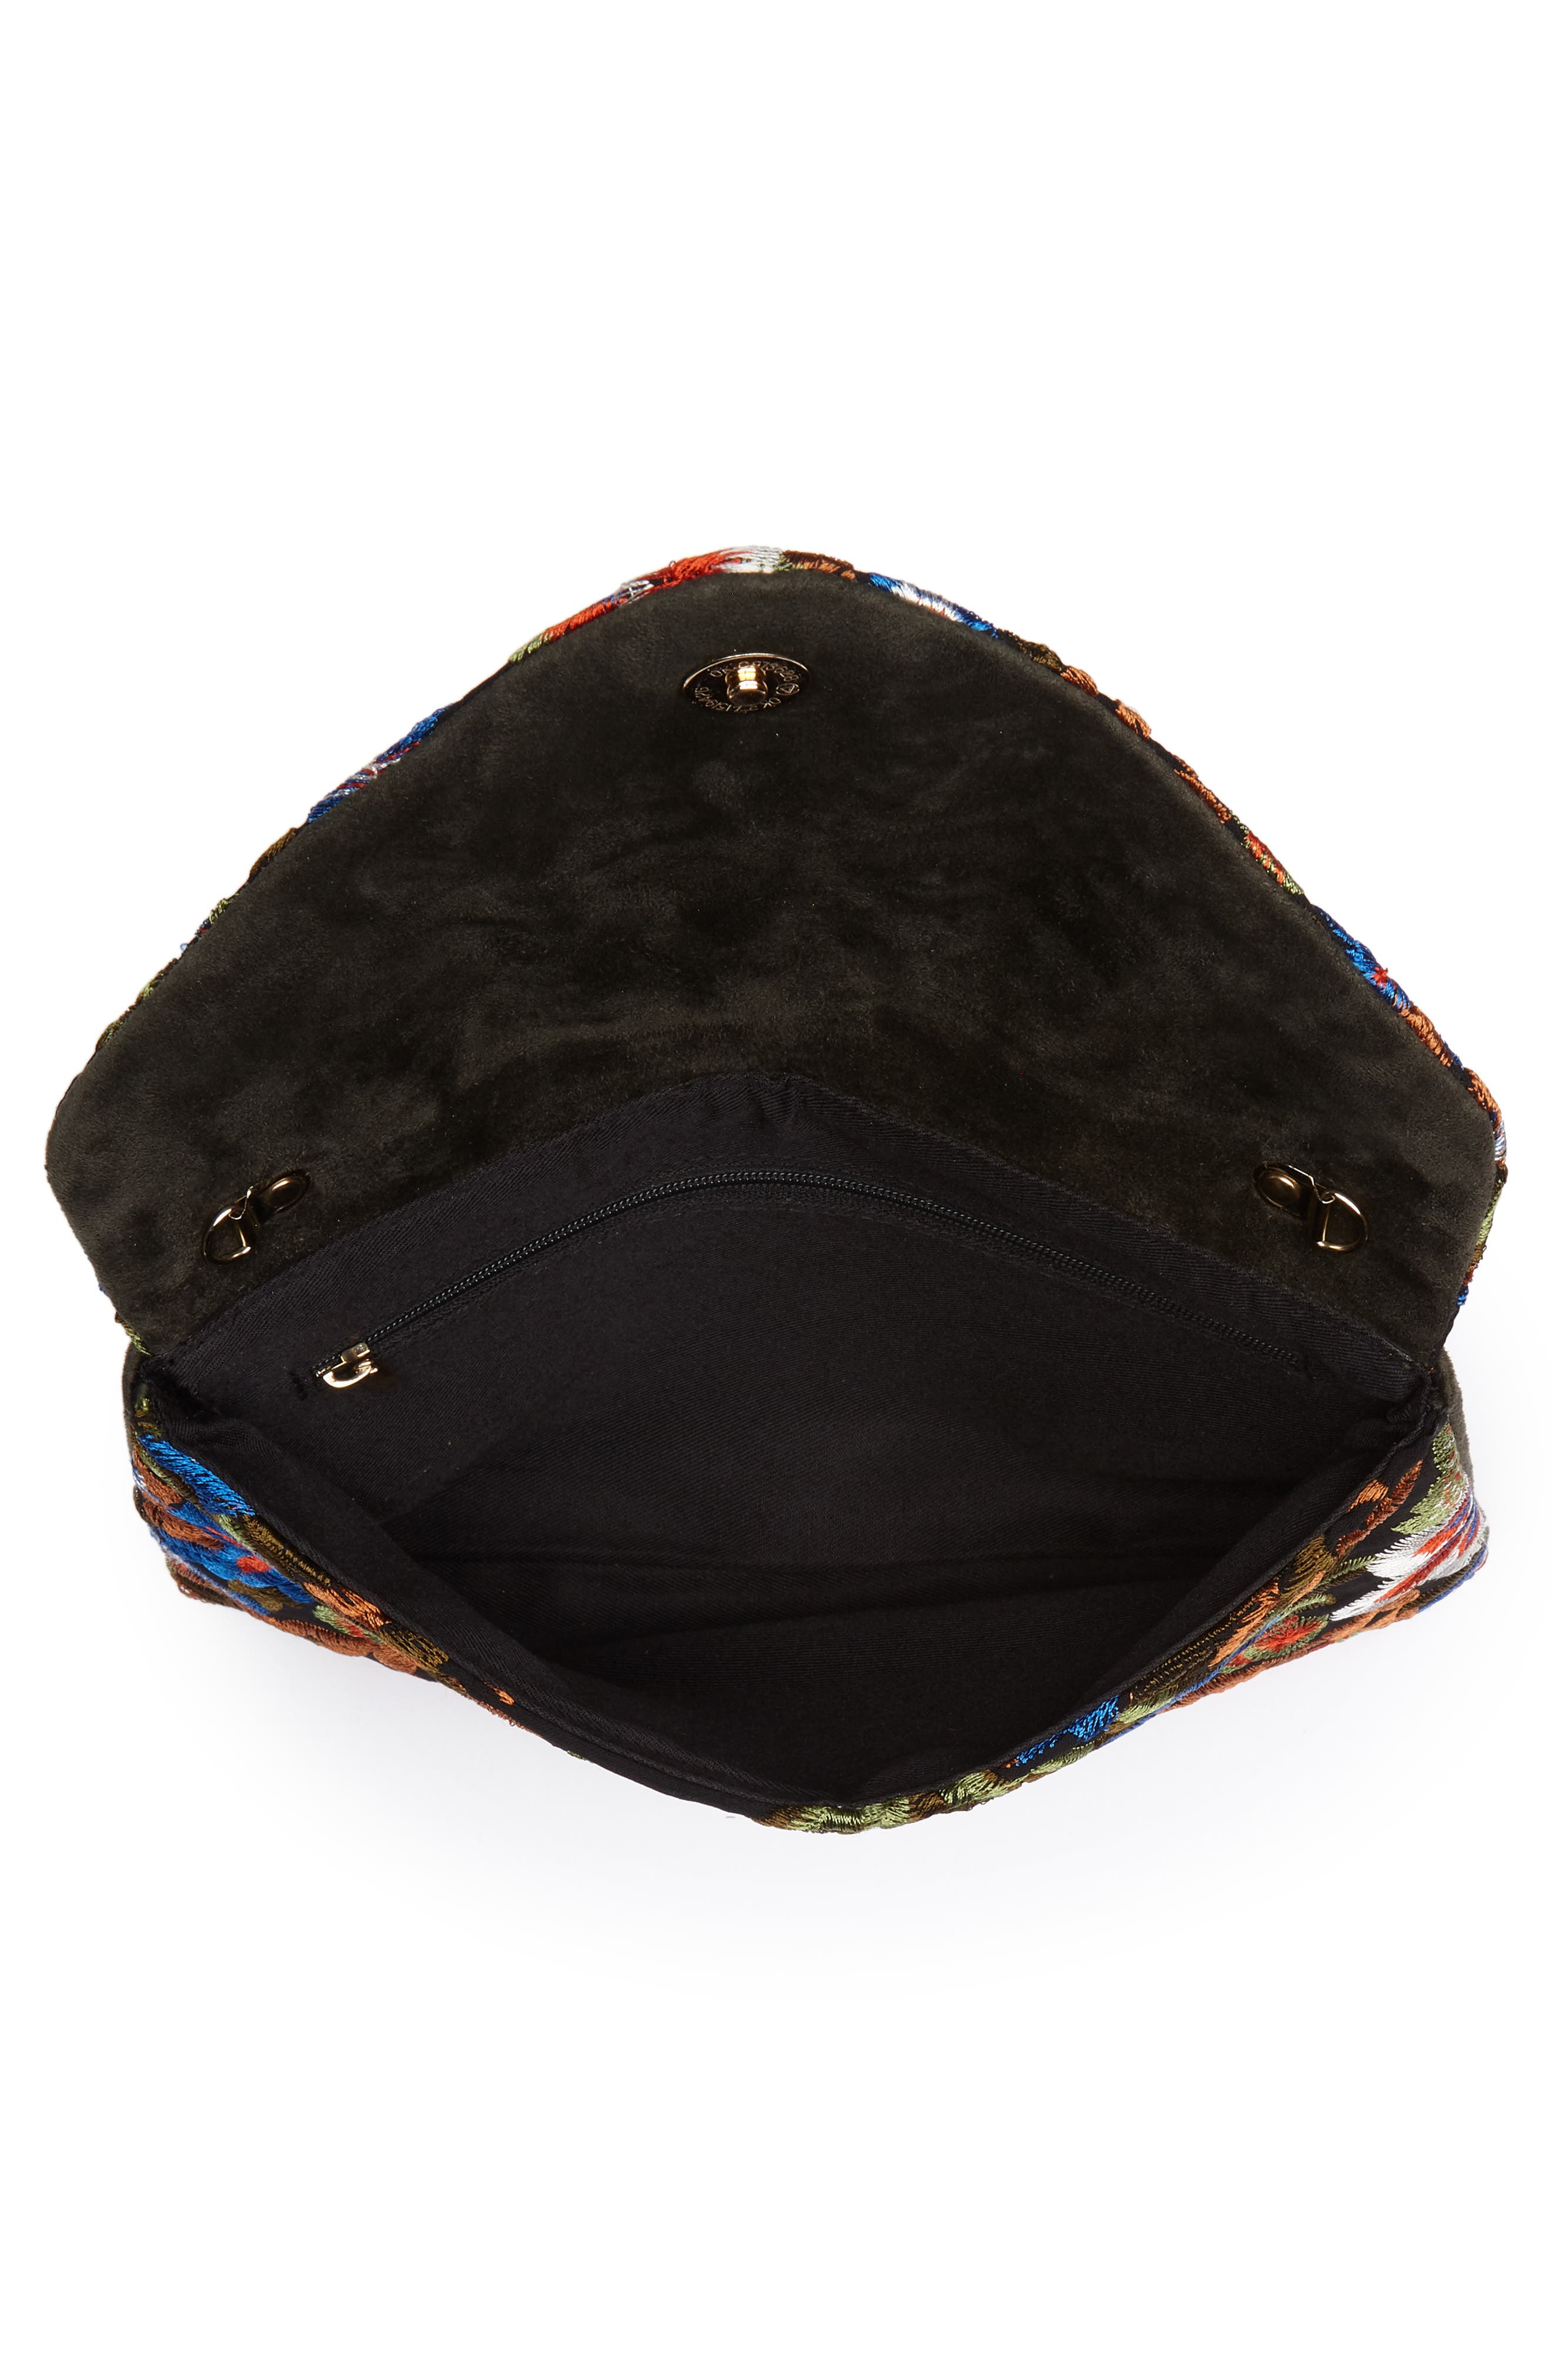 Embroidered Envelope Clutch,                             Alternate thumbnail 4, color,                             461